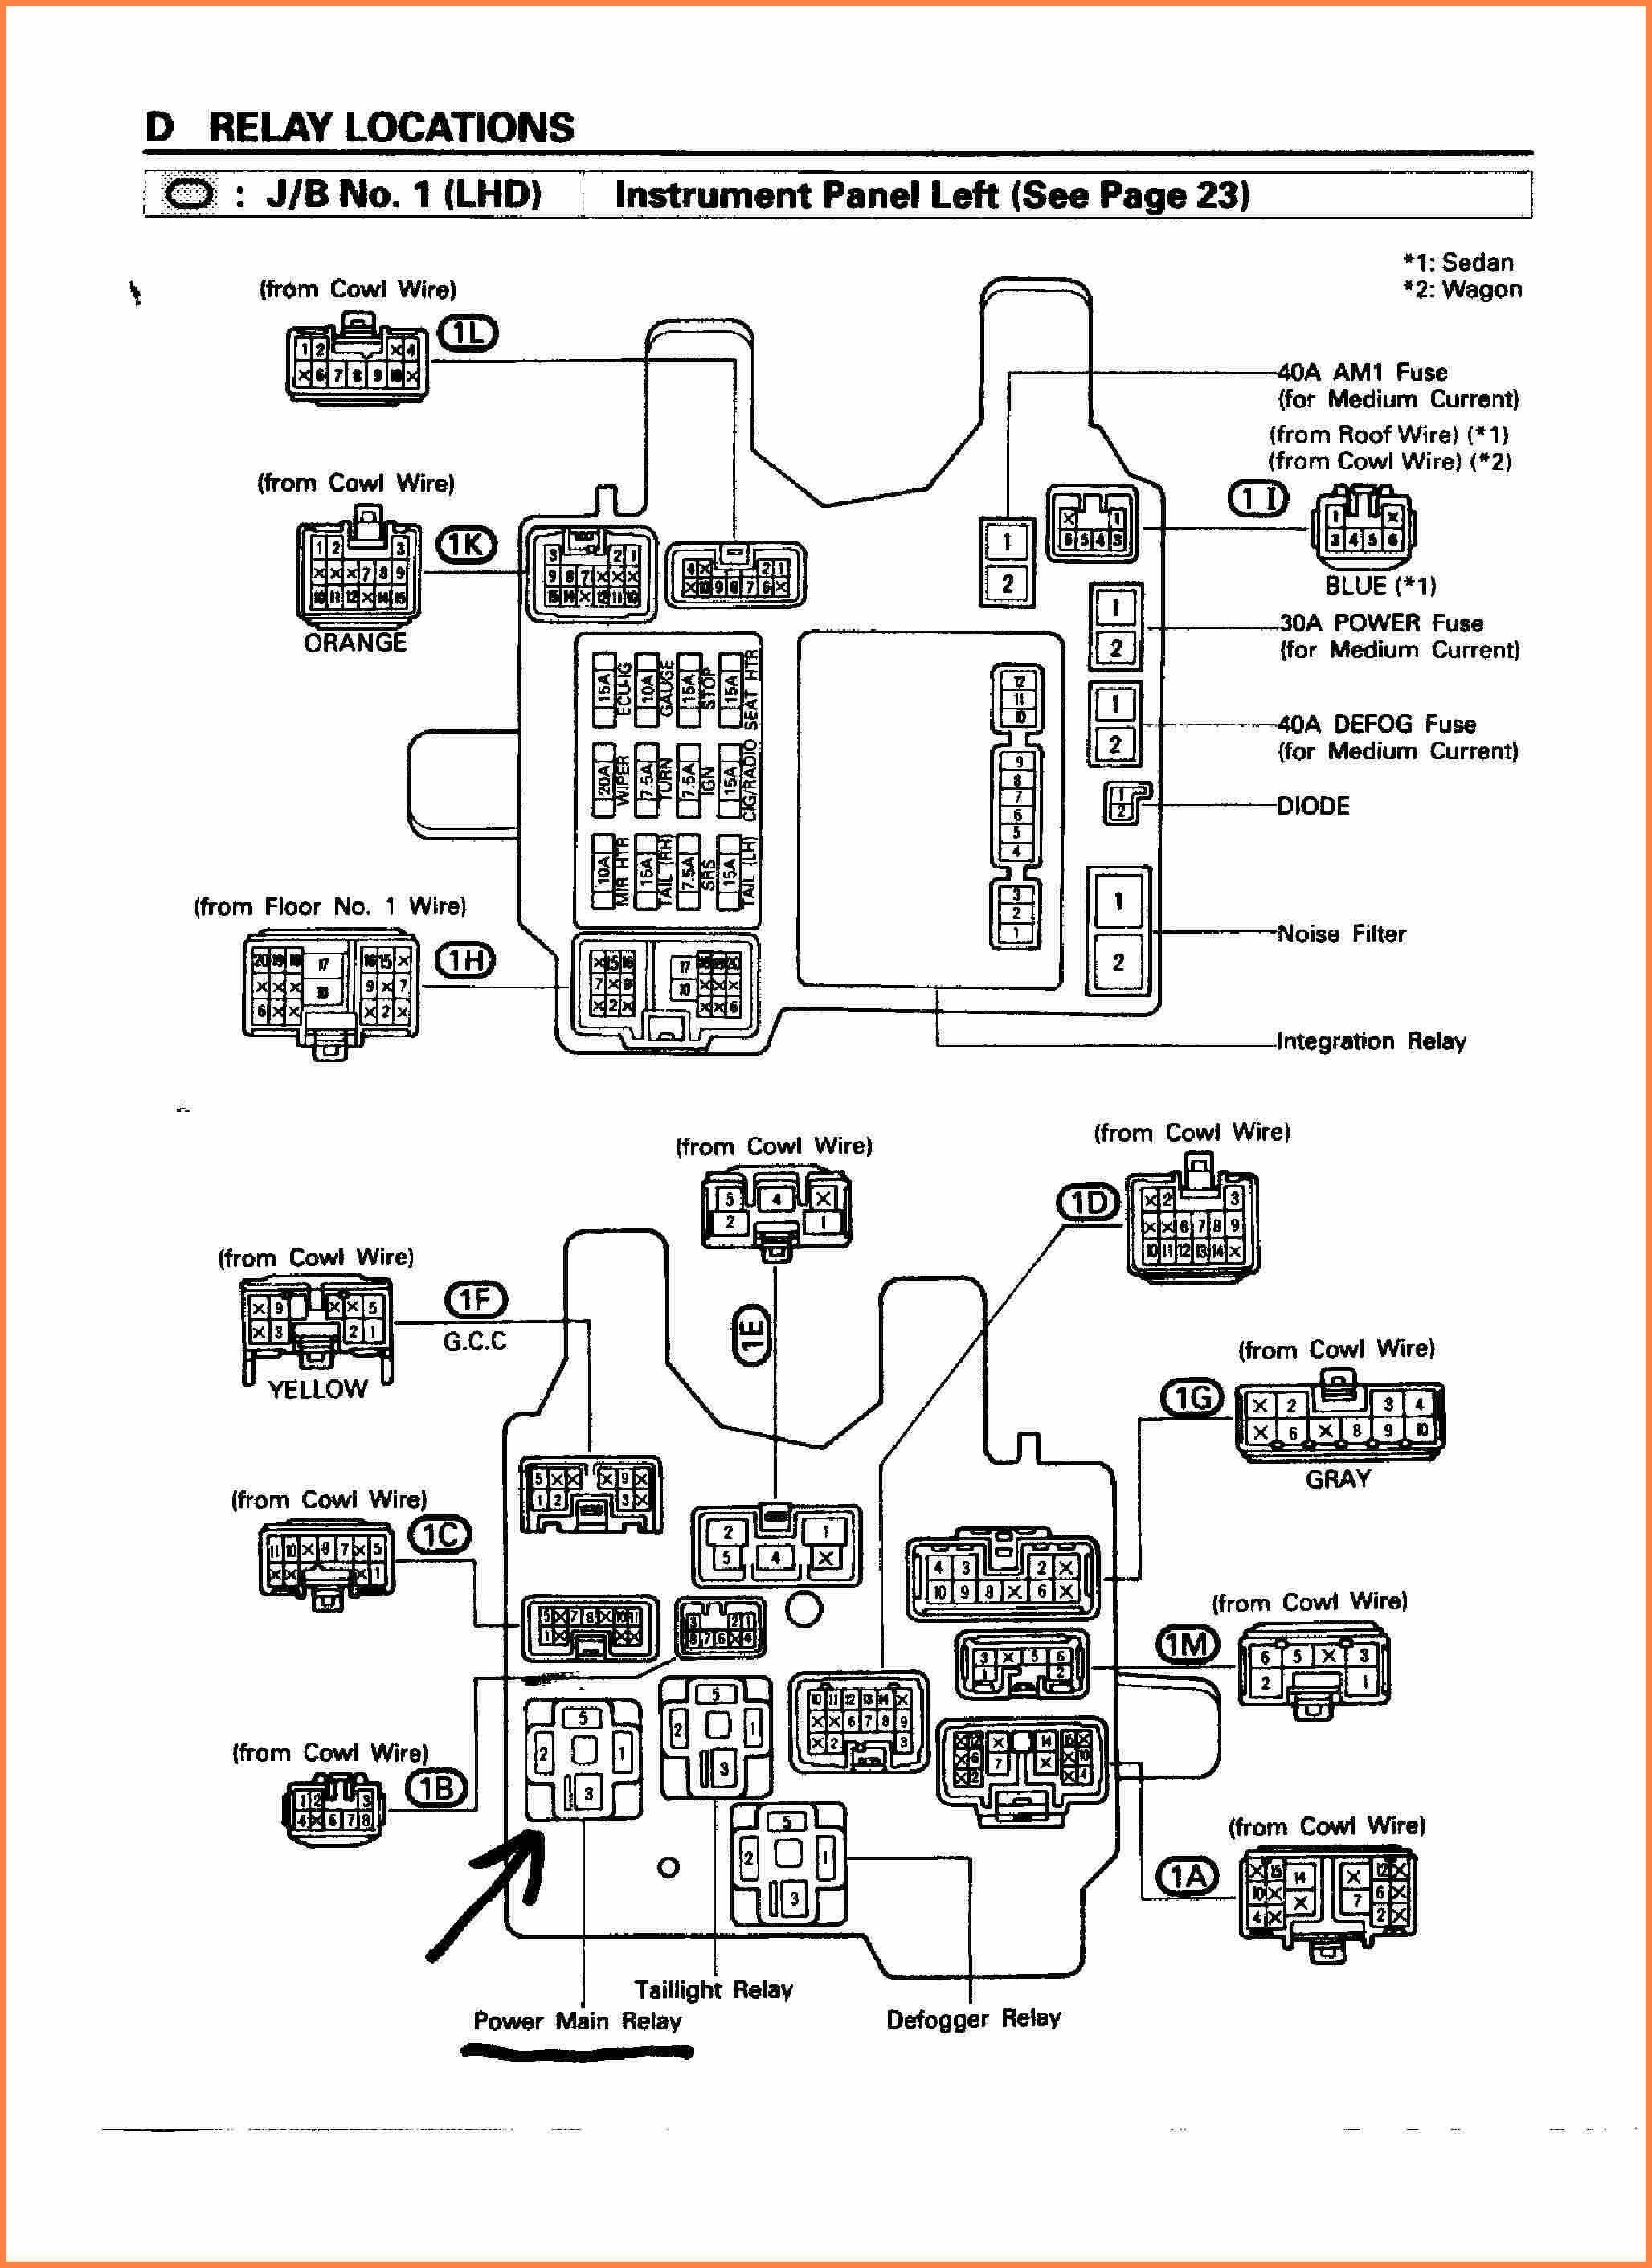 99 Camry Engine Diagram 1994 Camry Le Wiring Diagram Another Blog About Wiring Diagram • Of 99 Camry Engine Diagram Wiring Diagram for A 1999 toyota Camry Amazing Radio 9